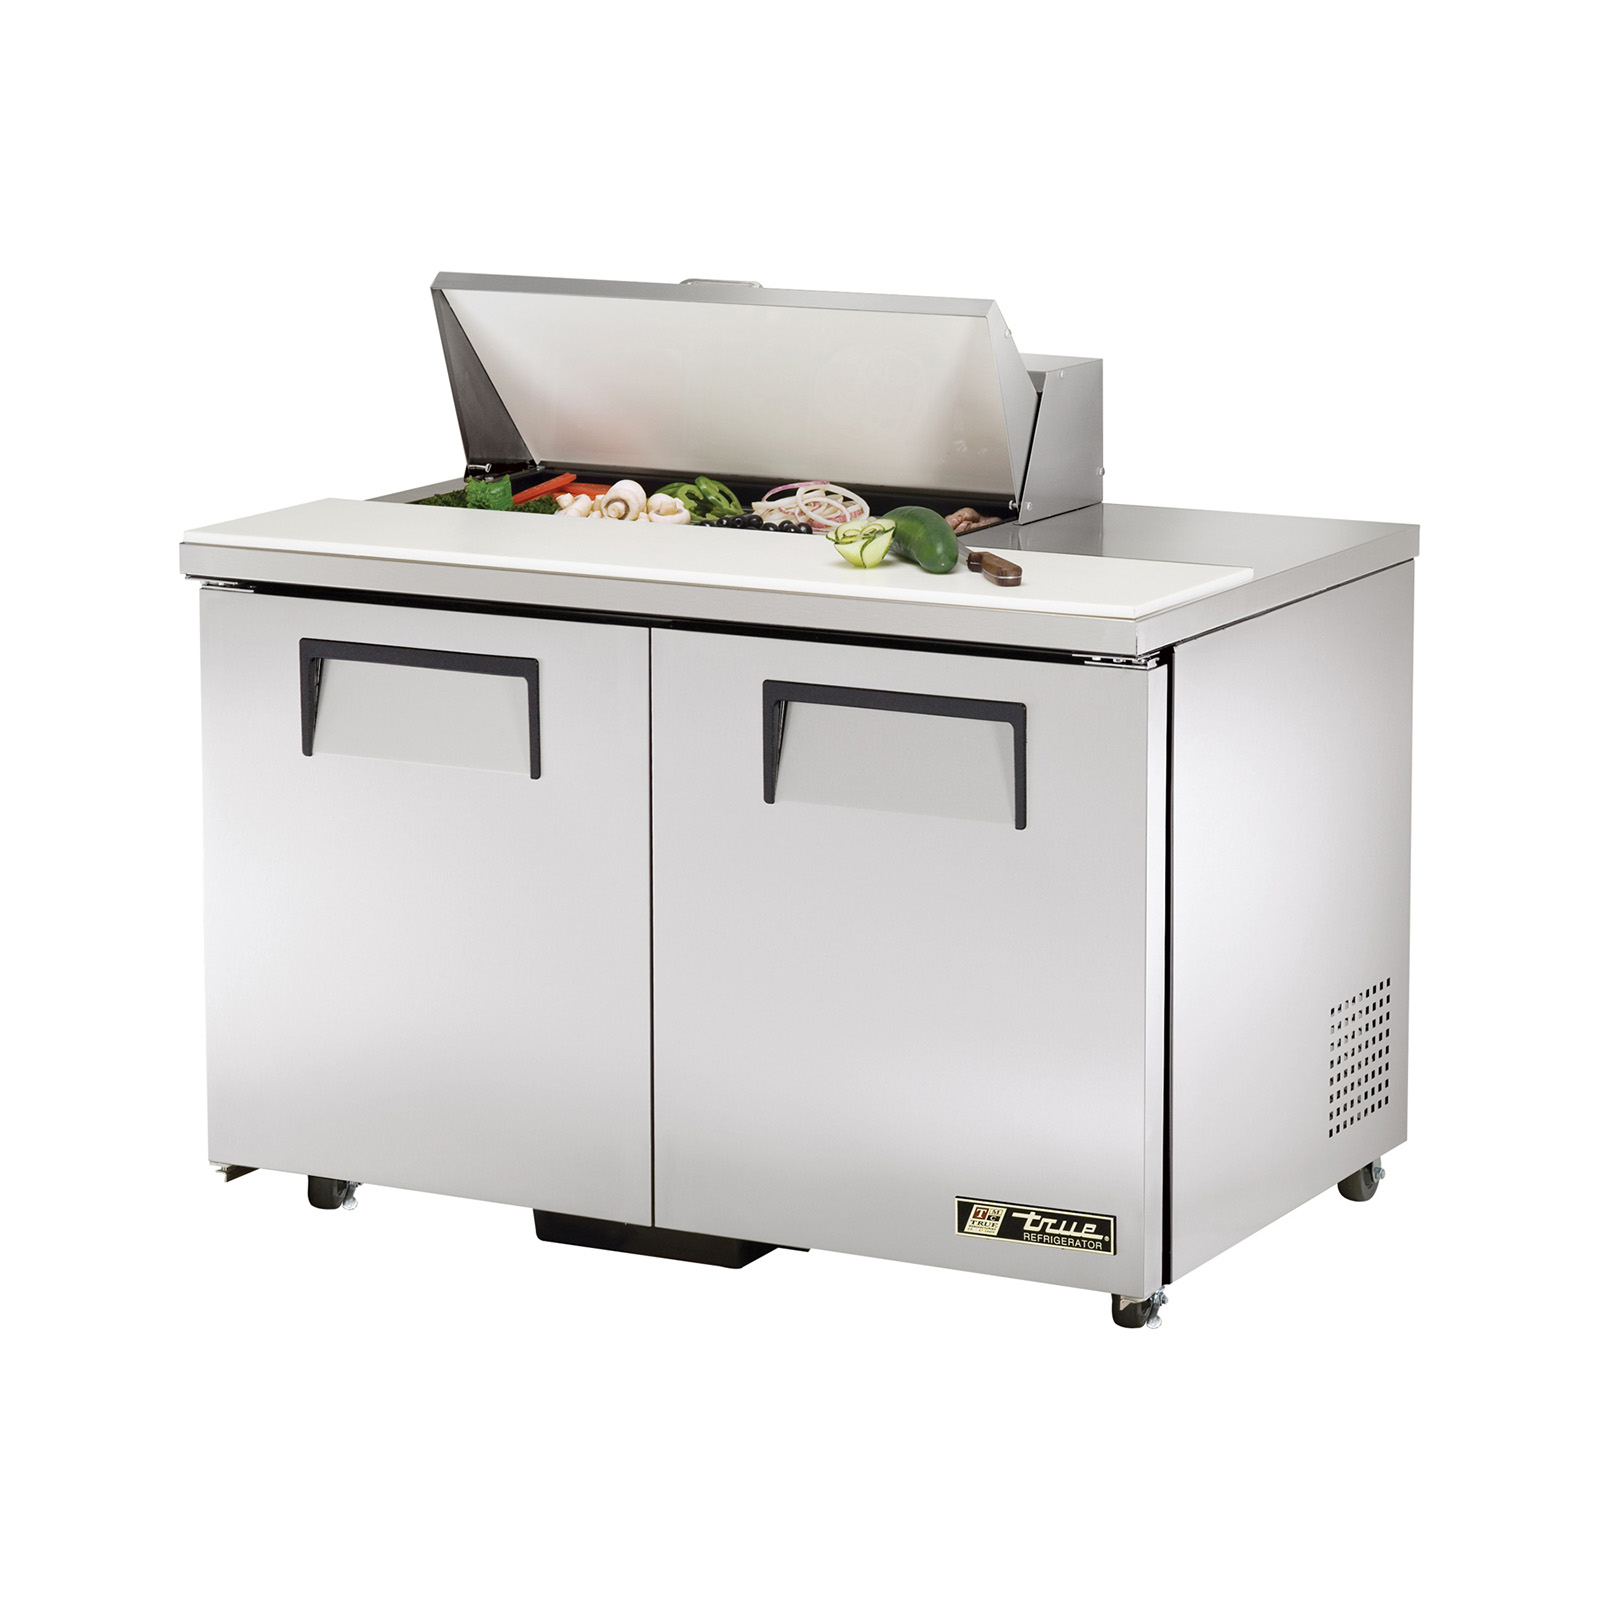 TSSU-48-08-ADA True - ADA Compliant Sandwich/Salad Unit (8) 1/6 size (4